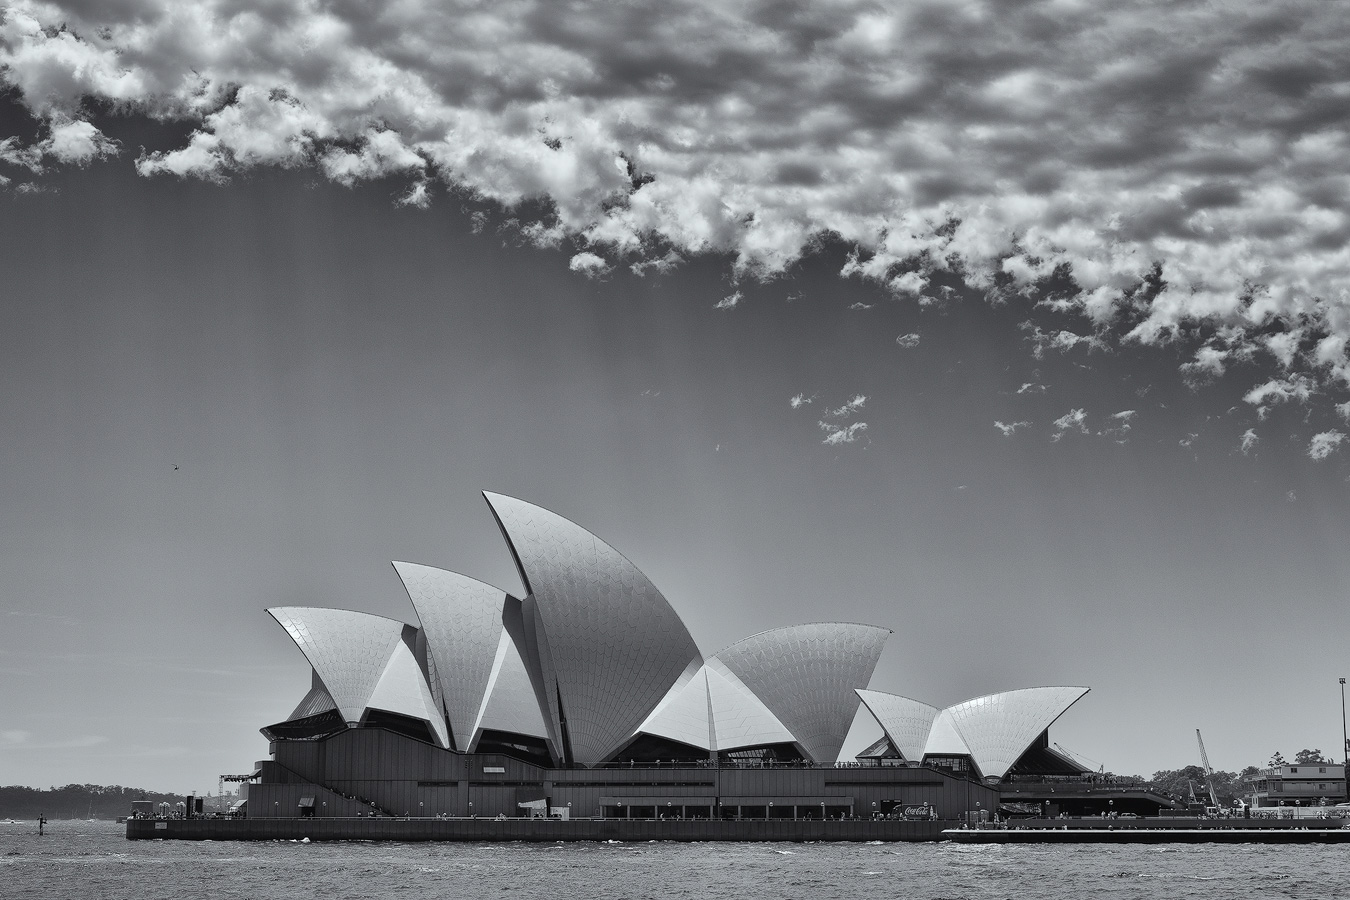 Black And White Photography Monochrome Photography